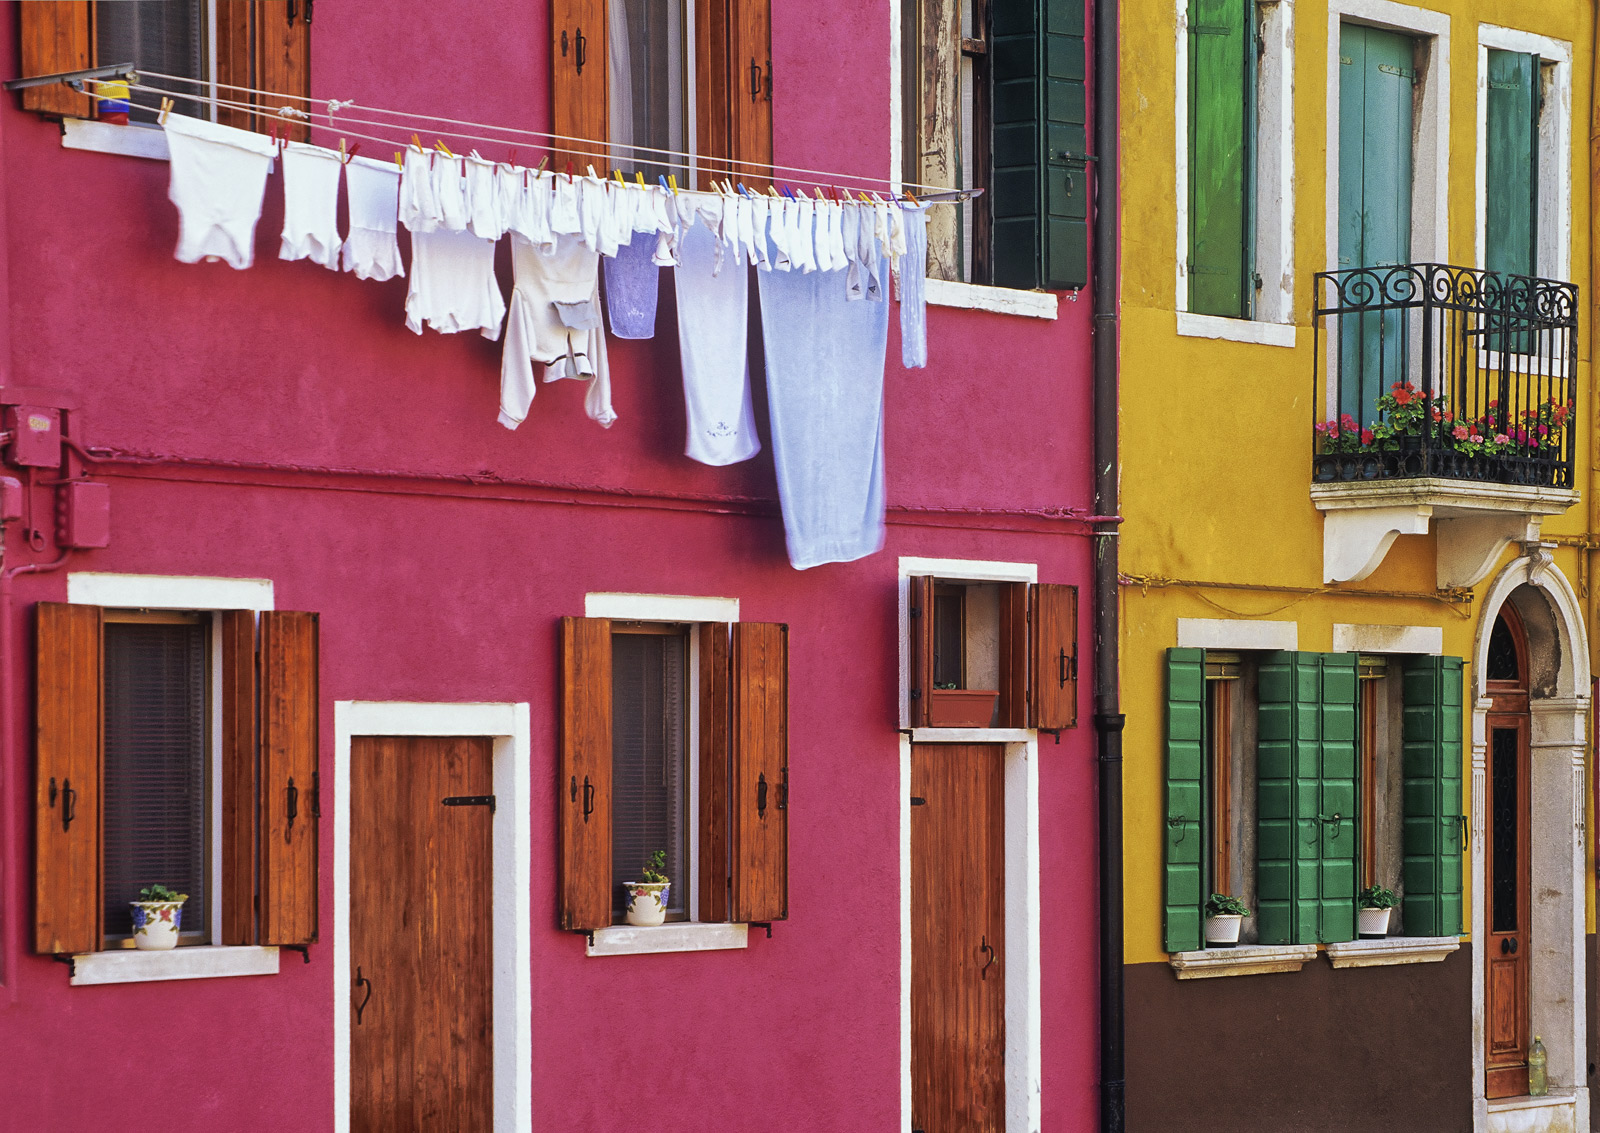 Every Monday it seems that the locals in Venice and particularly the occupants of these amazing colourful houses that festoon...